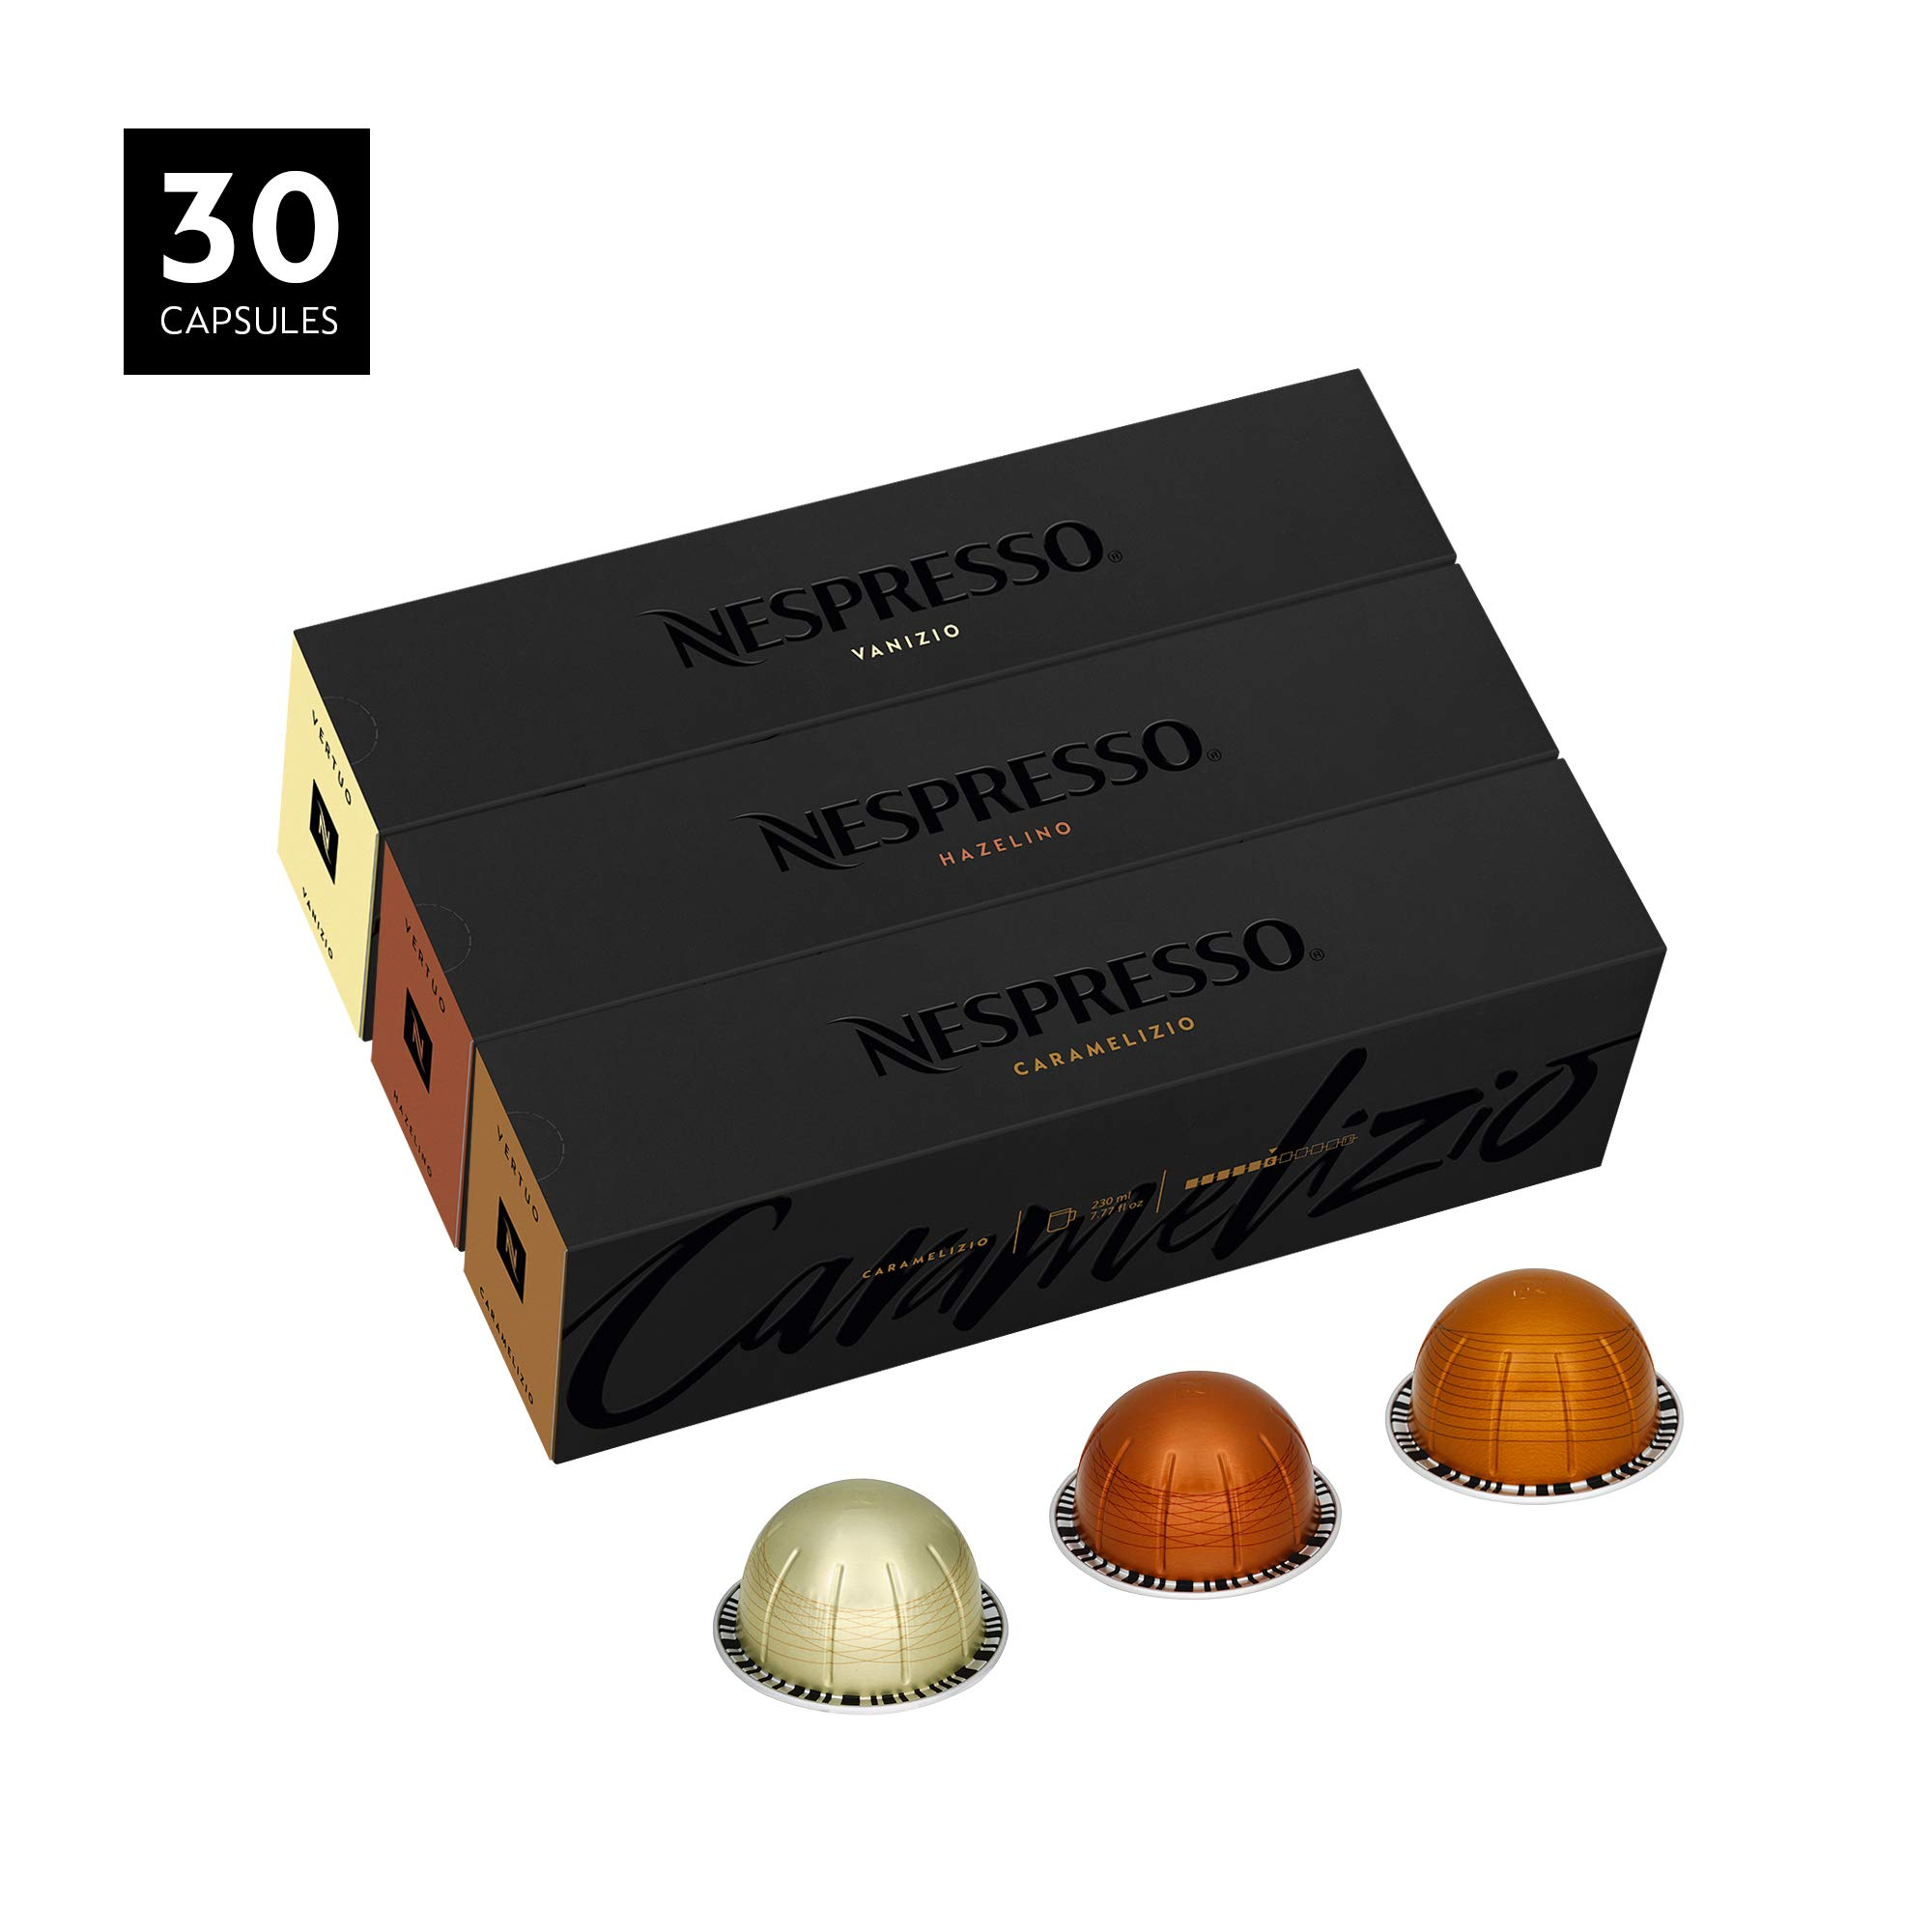 Nespresso VertuoLine Coffee, Flavored Assortment, 30 Capsules by Nespresso